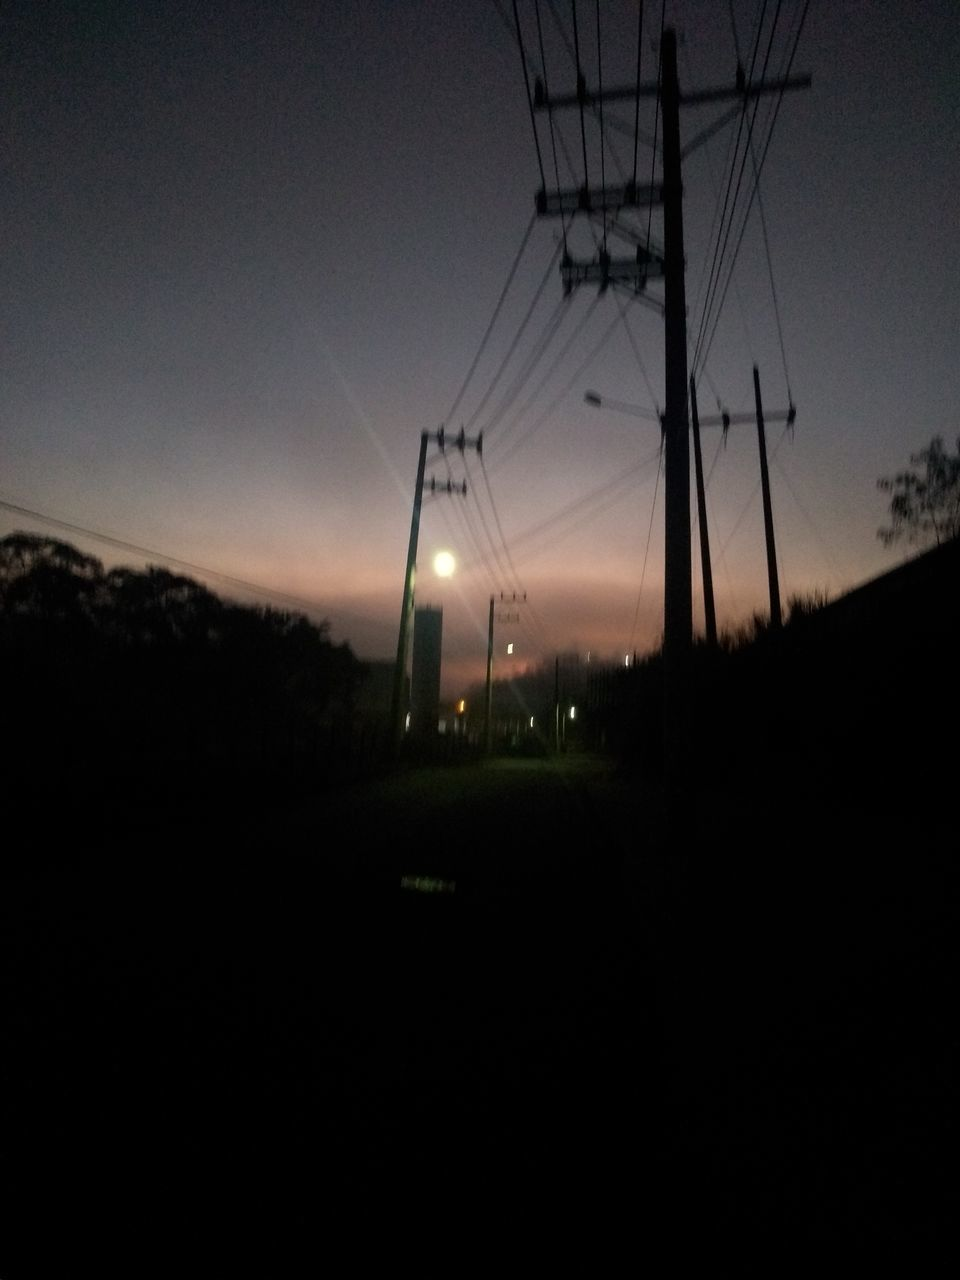 sky, electricity, electricity pylon, environment, landscape, power supply, technology, cable, fuel and power generation, power line, nature, no people, field, copy space, connection, land, silhouette, sunset, lighting equipment, dusk, outdoors, dark, telephone line